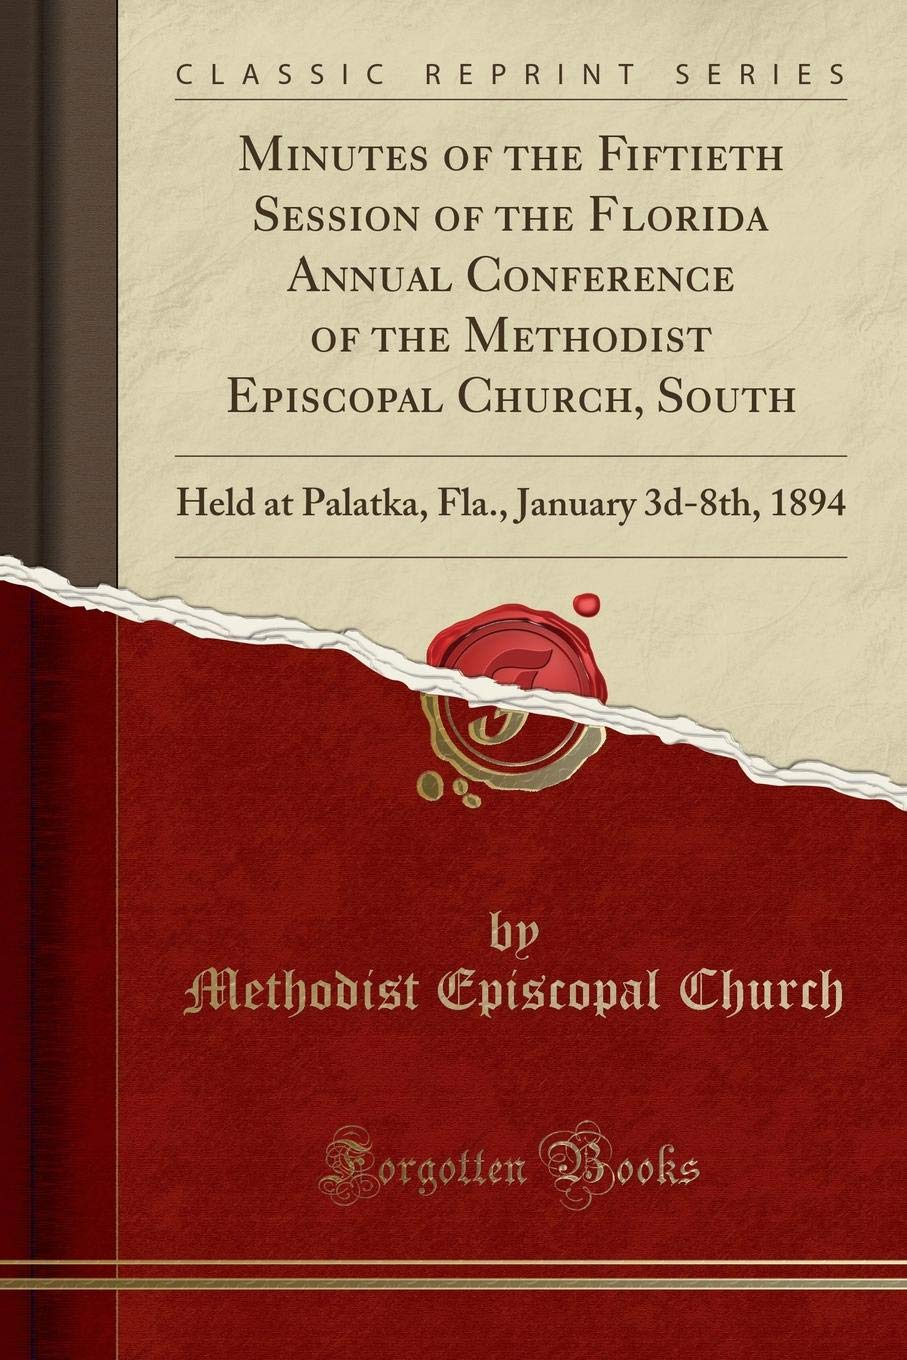 Download Minutes of the Fiftieth Session of the Florida Annual Conference of the Methodist Episcopal Church, South: Held at Palatka, Fla., January 3d-8th, 1894 (Classic Reprint) ebook